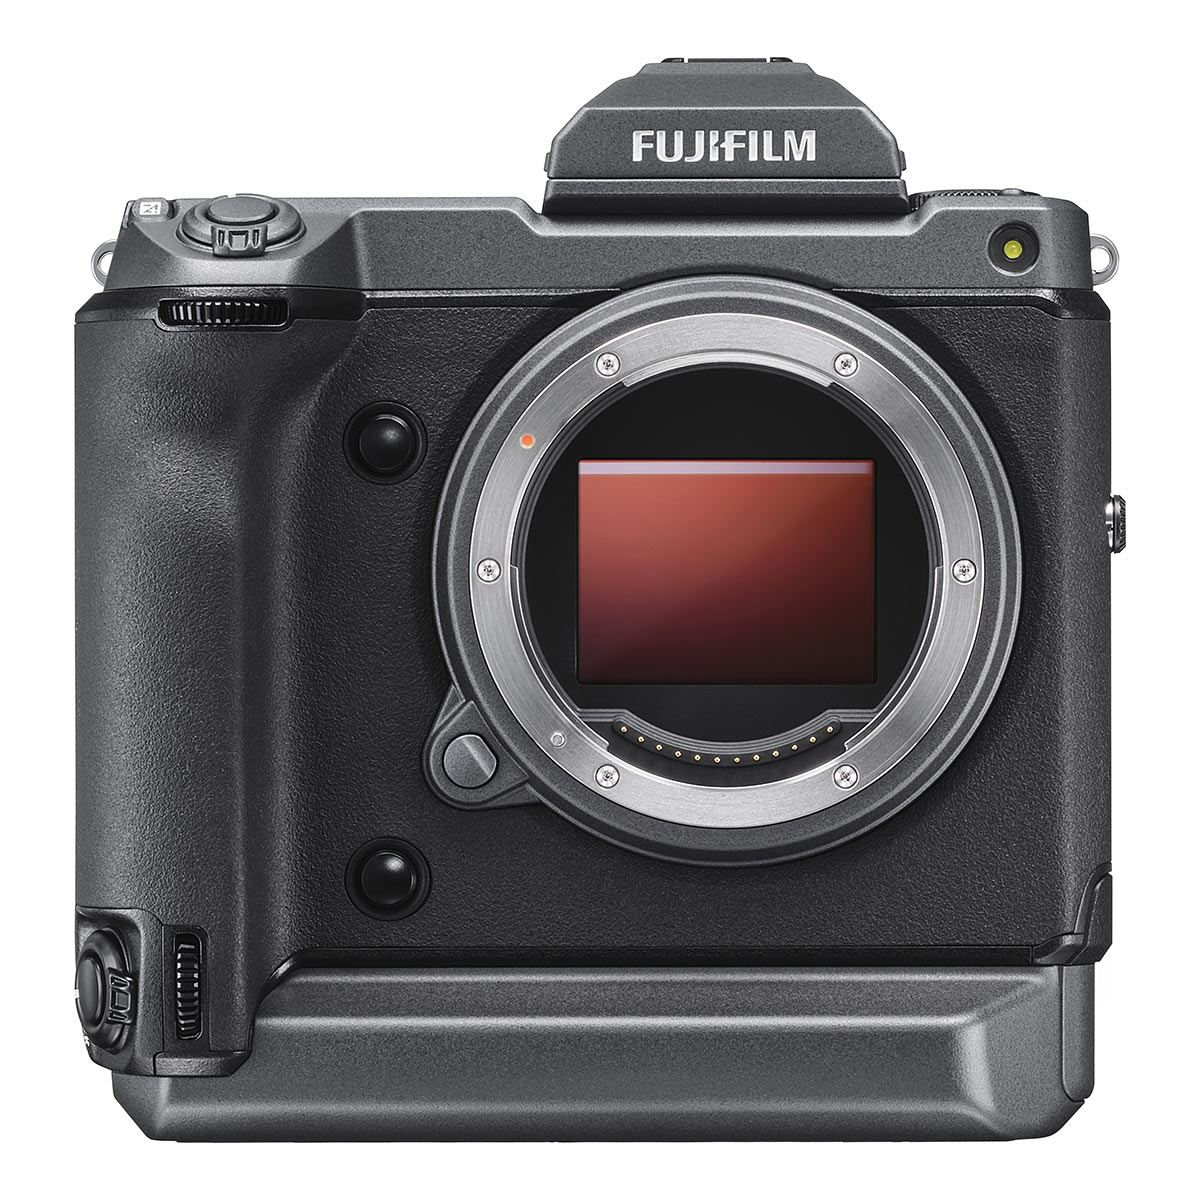 Image of Fujifilm GFX 100 Medium Format Camera Body